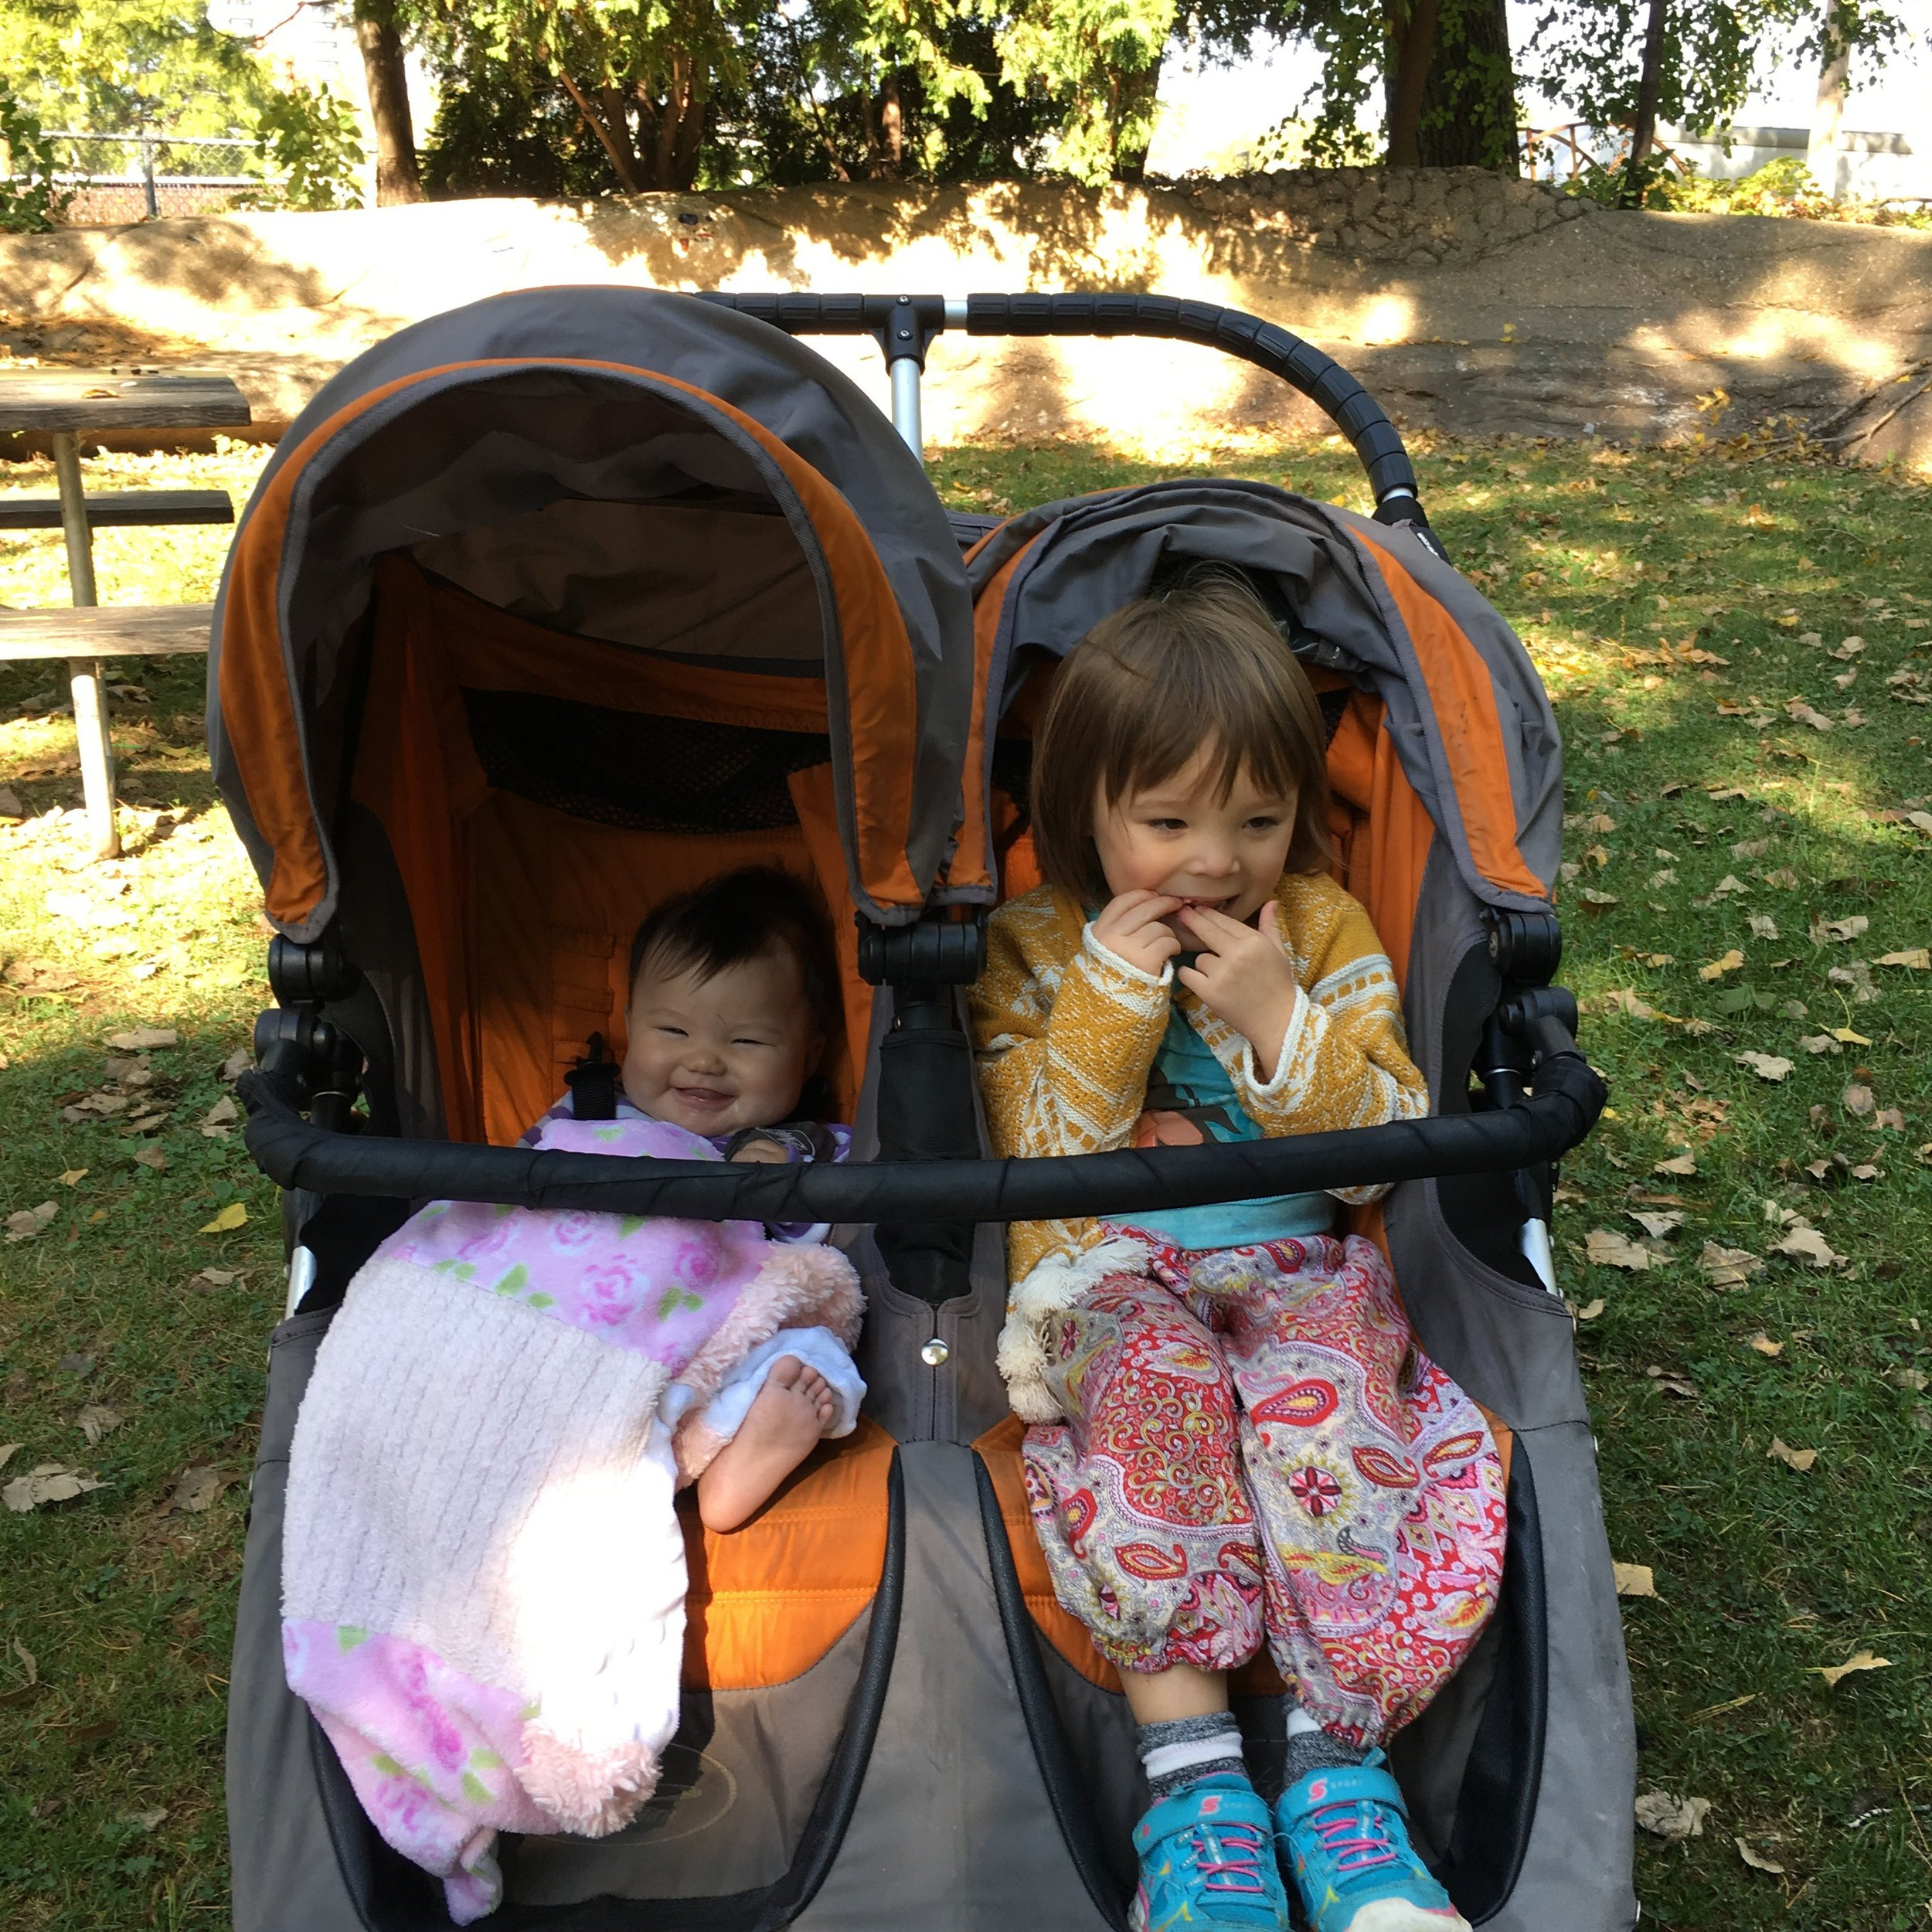 How did I get so lucky to have these two in my family. The girls enjoying themselves at a park. The elder one just started chewing gum last week...she's been just a little excited about it.